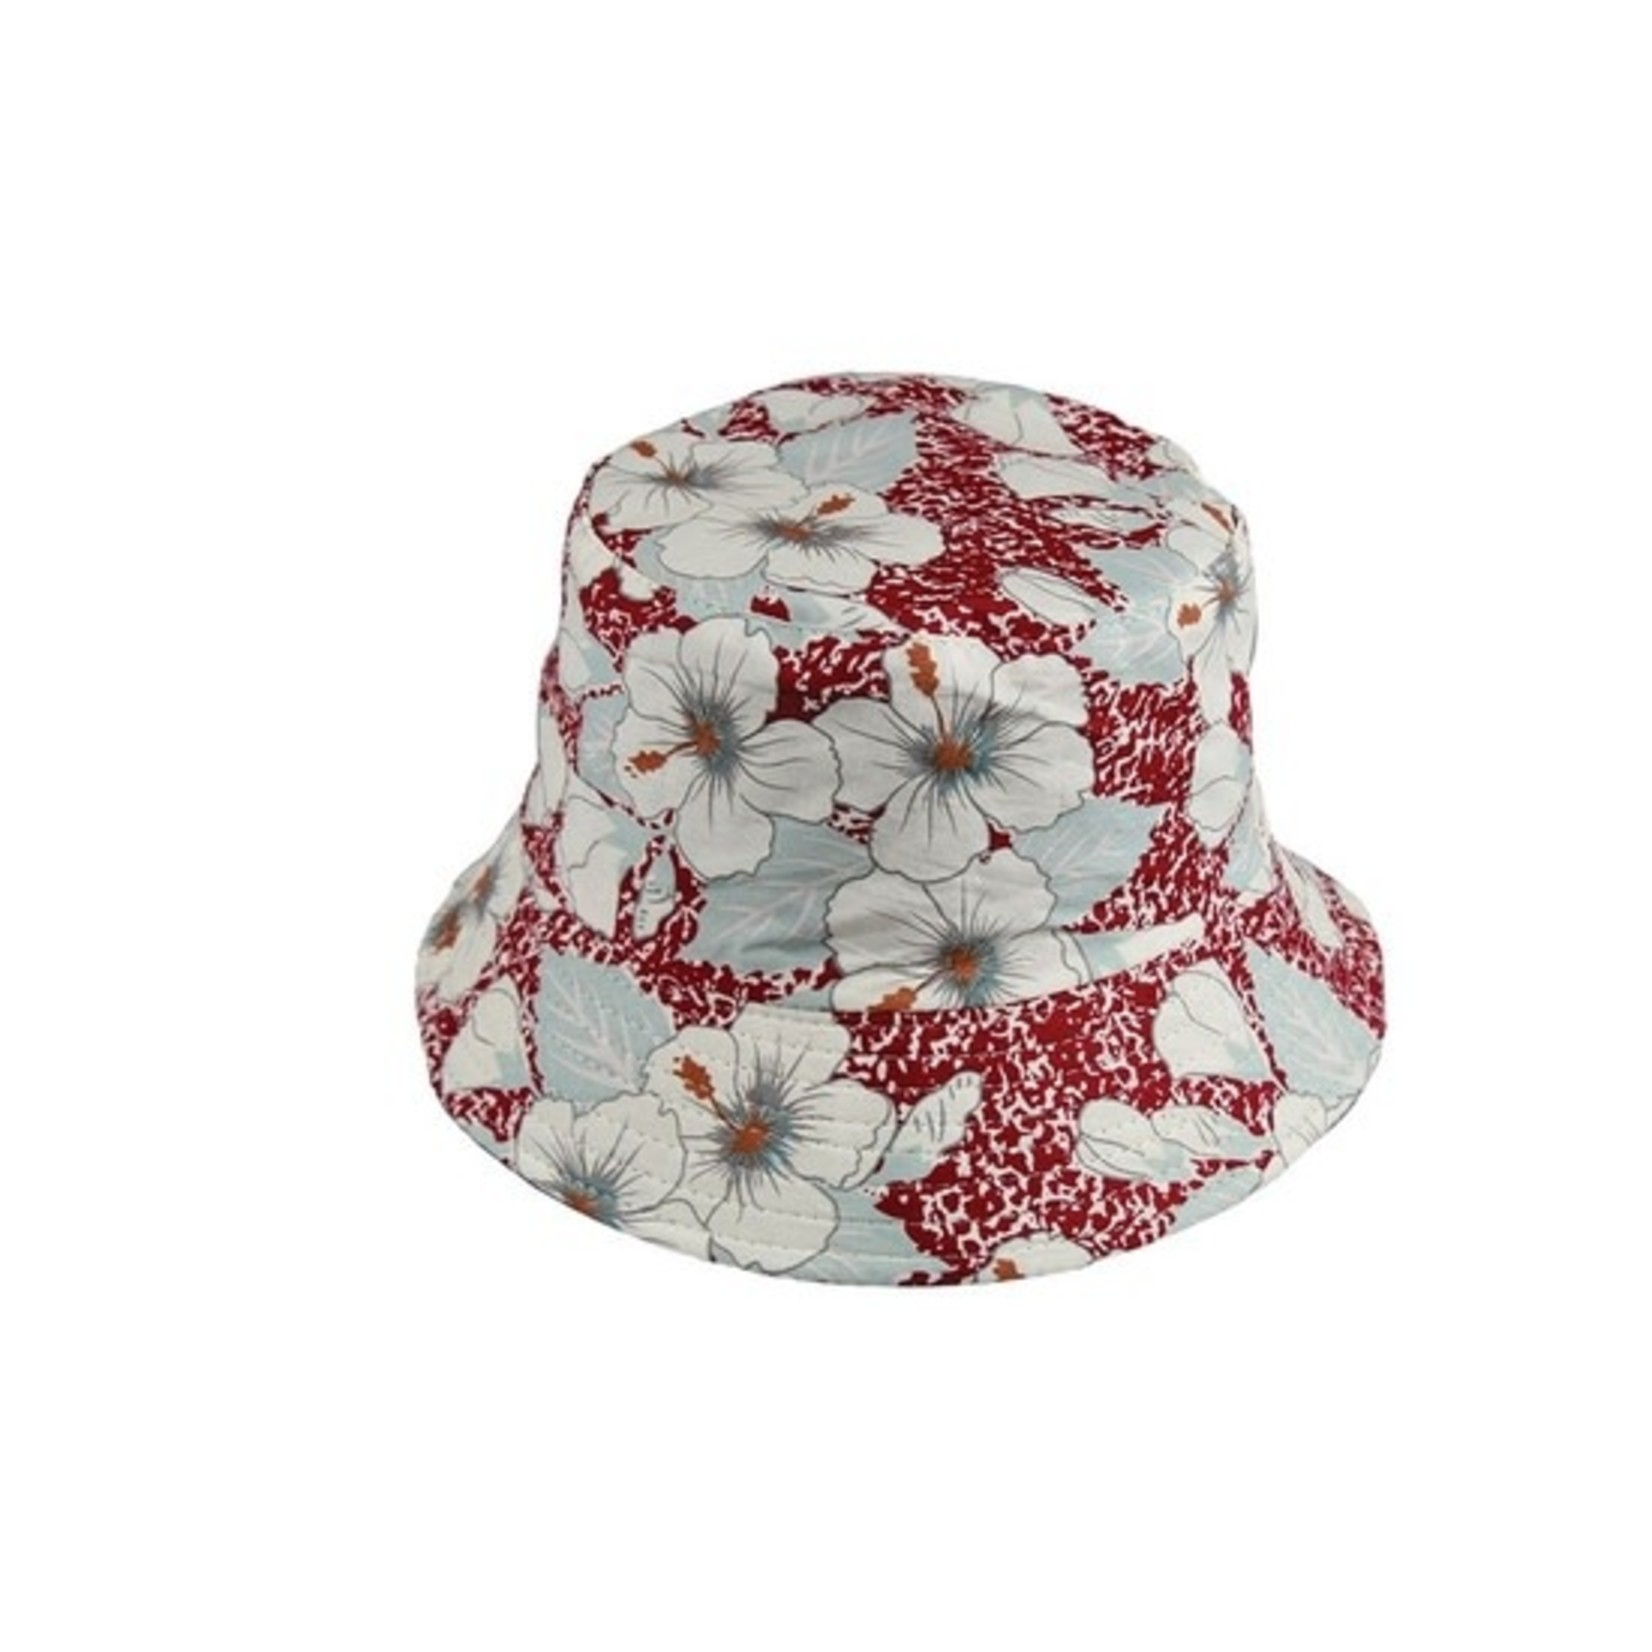 Floral Bucket Hat in Red